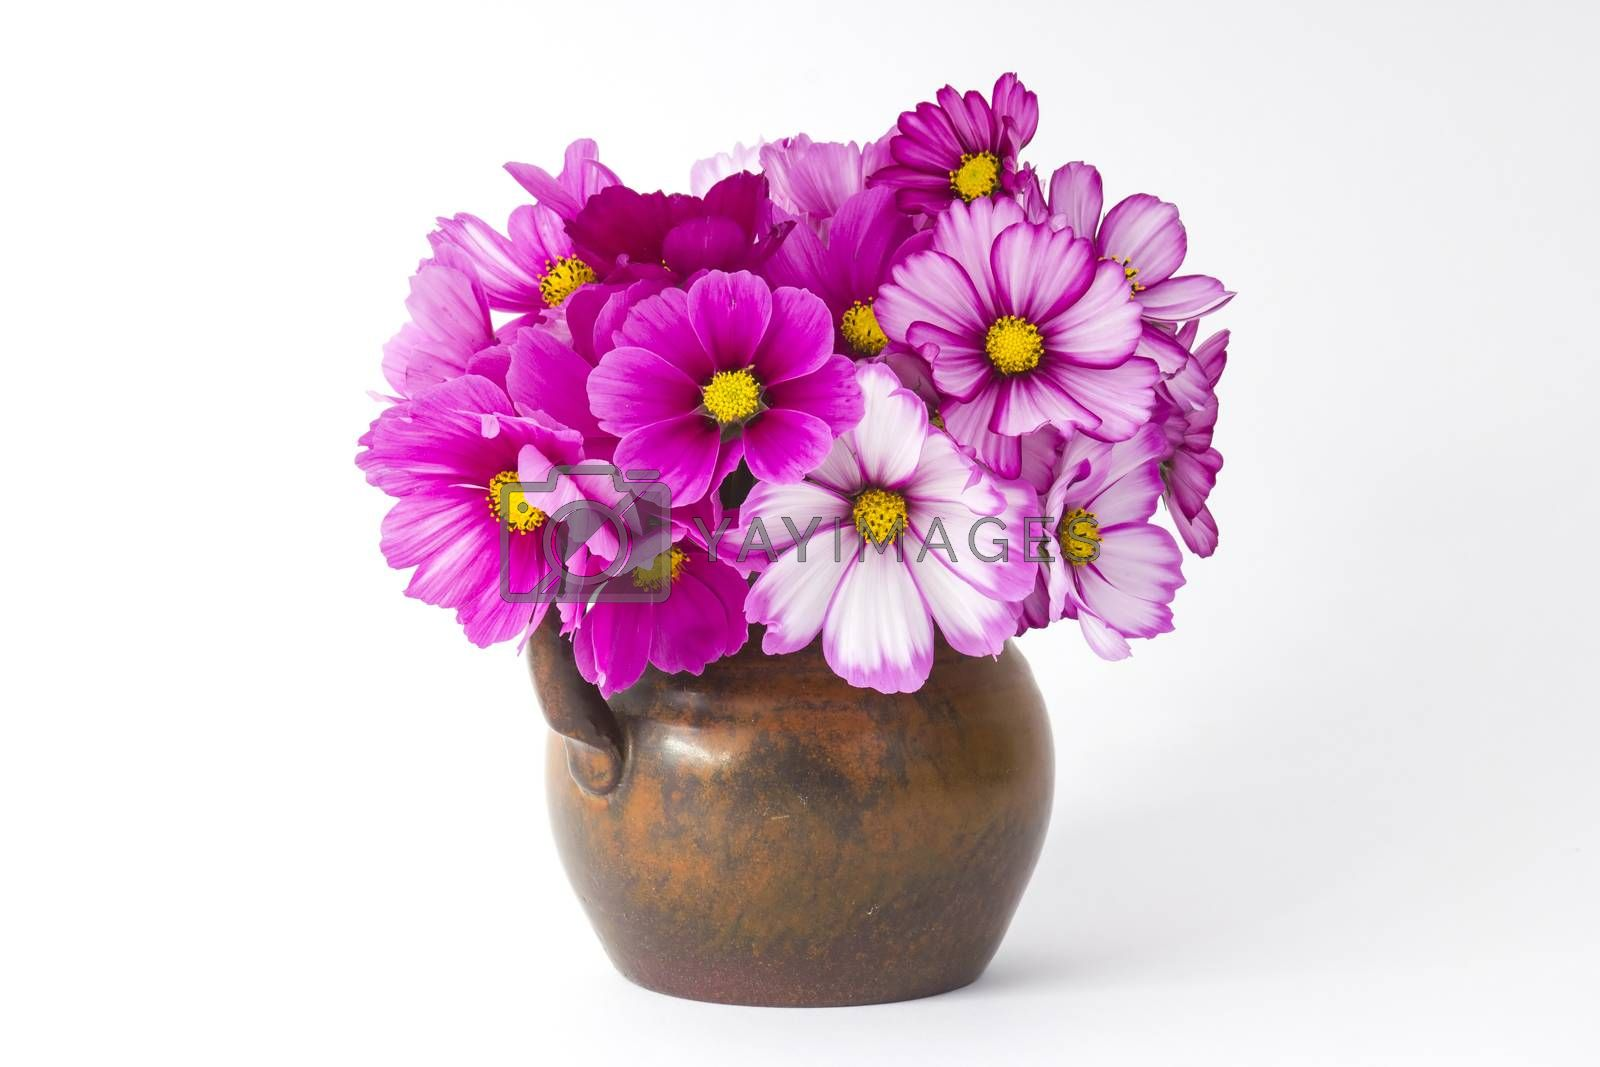 cosmos flowers in a vase on white background